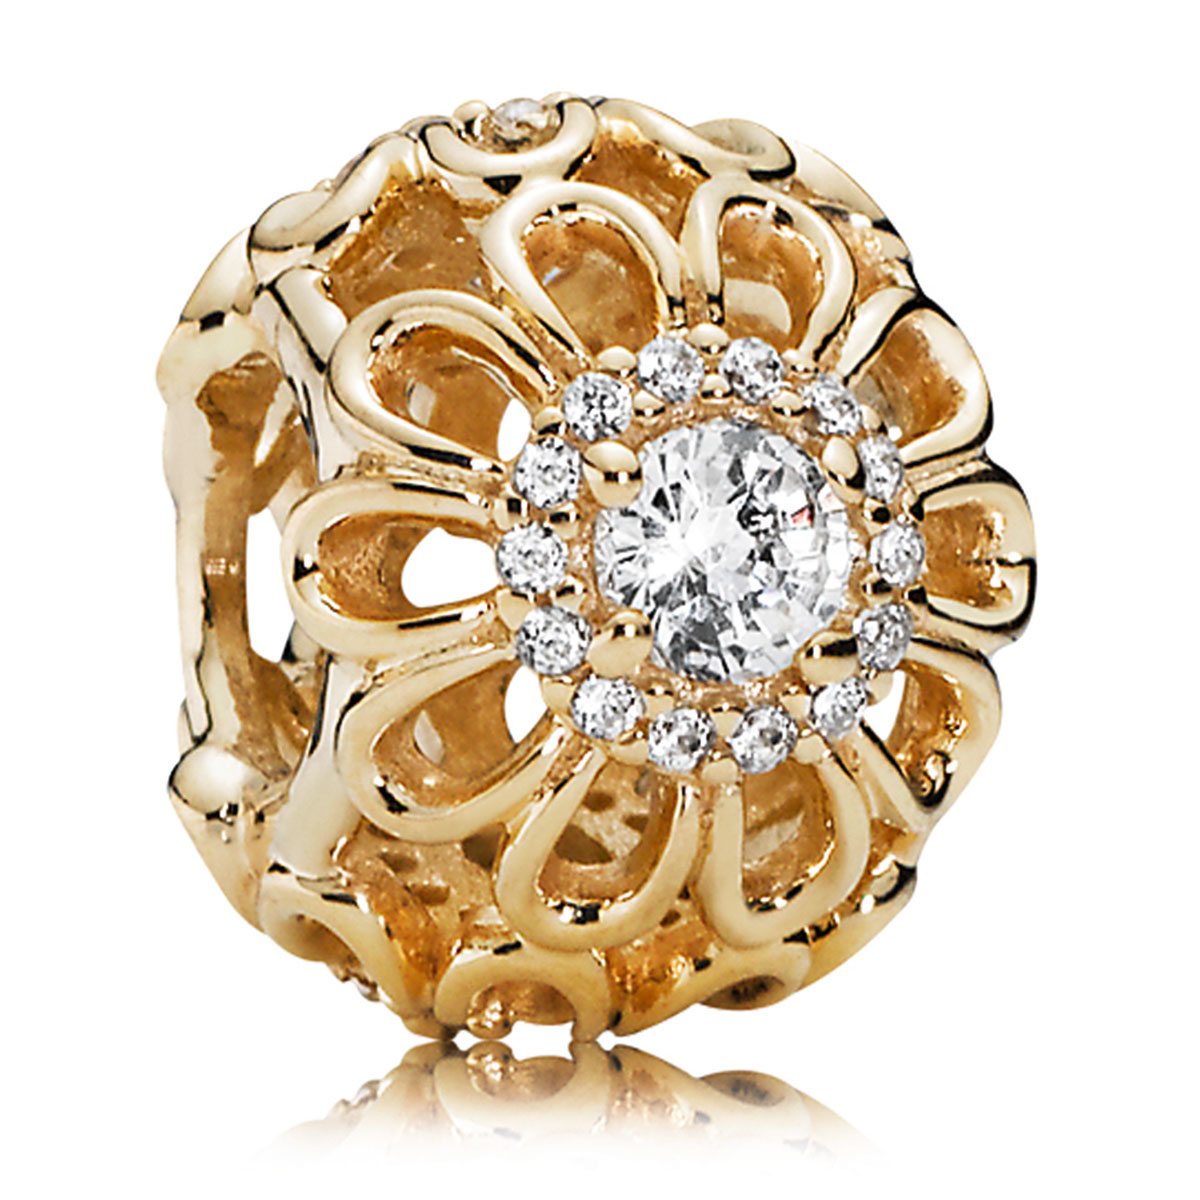 806-81-PANDORA 14K Floral Brilliance with Clear CZ Charm